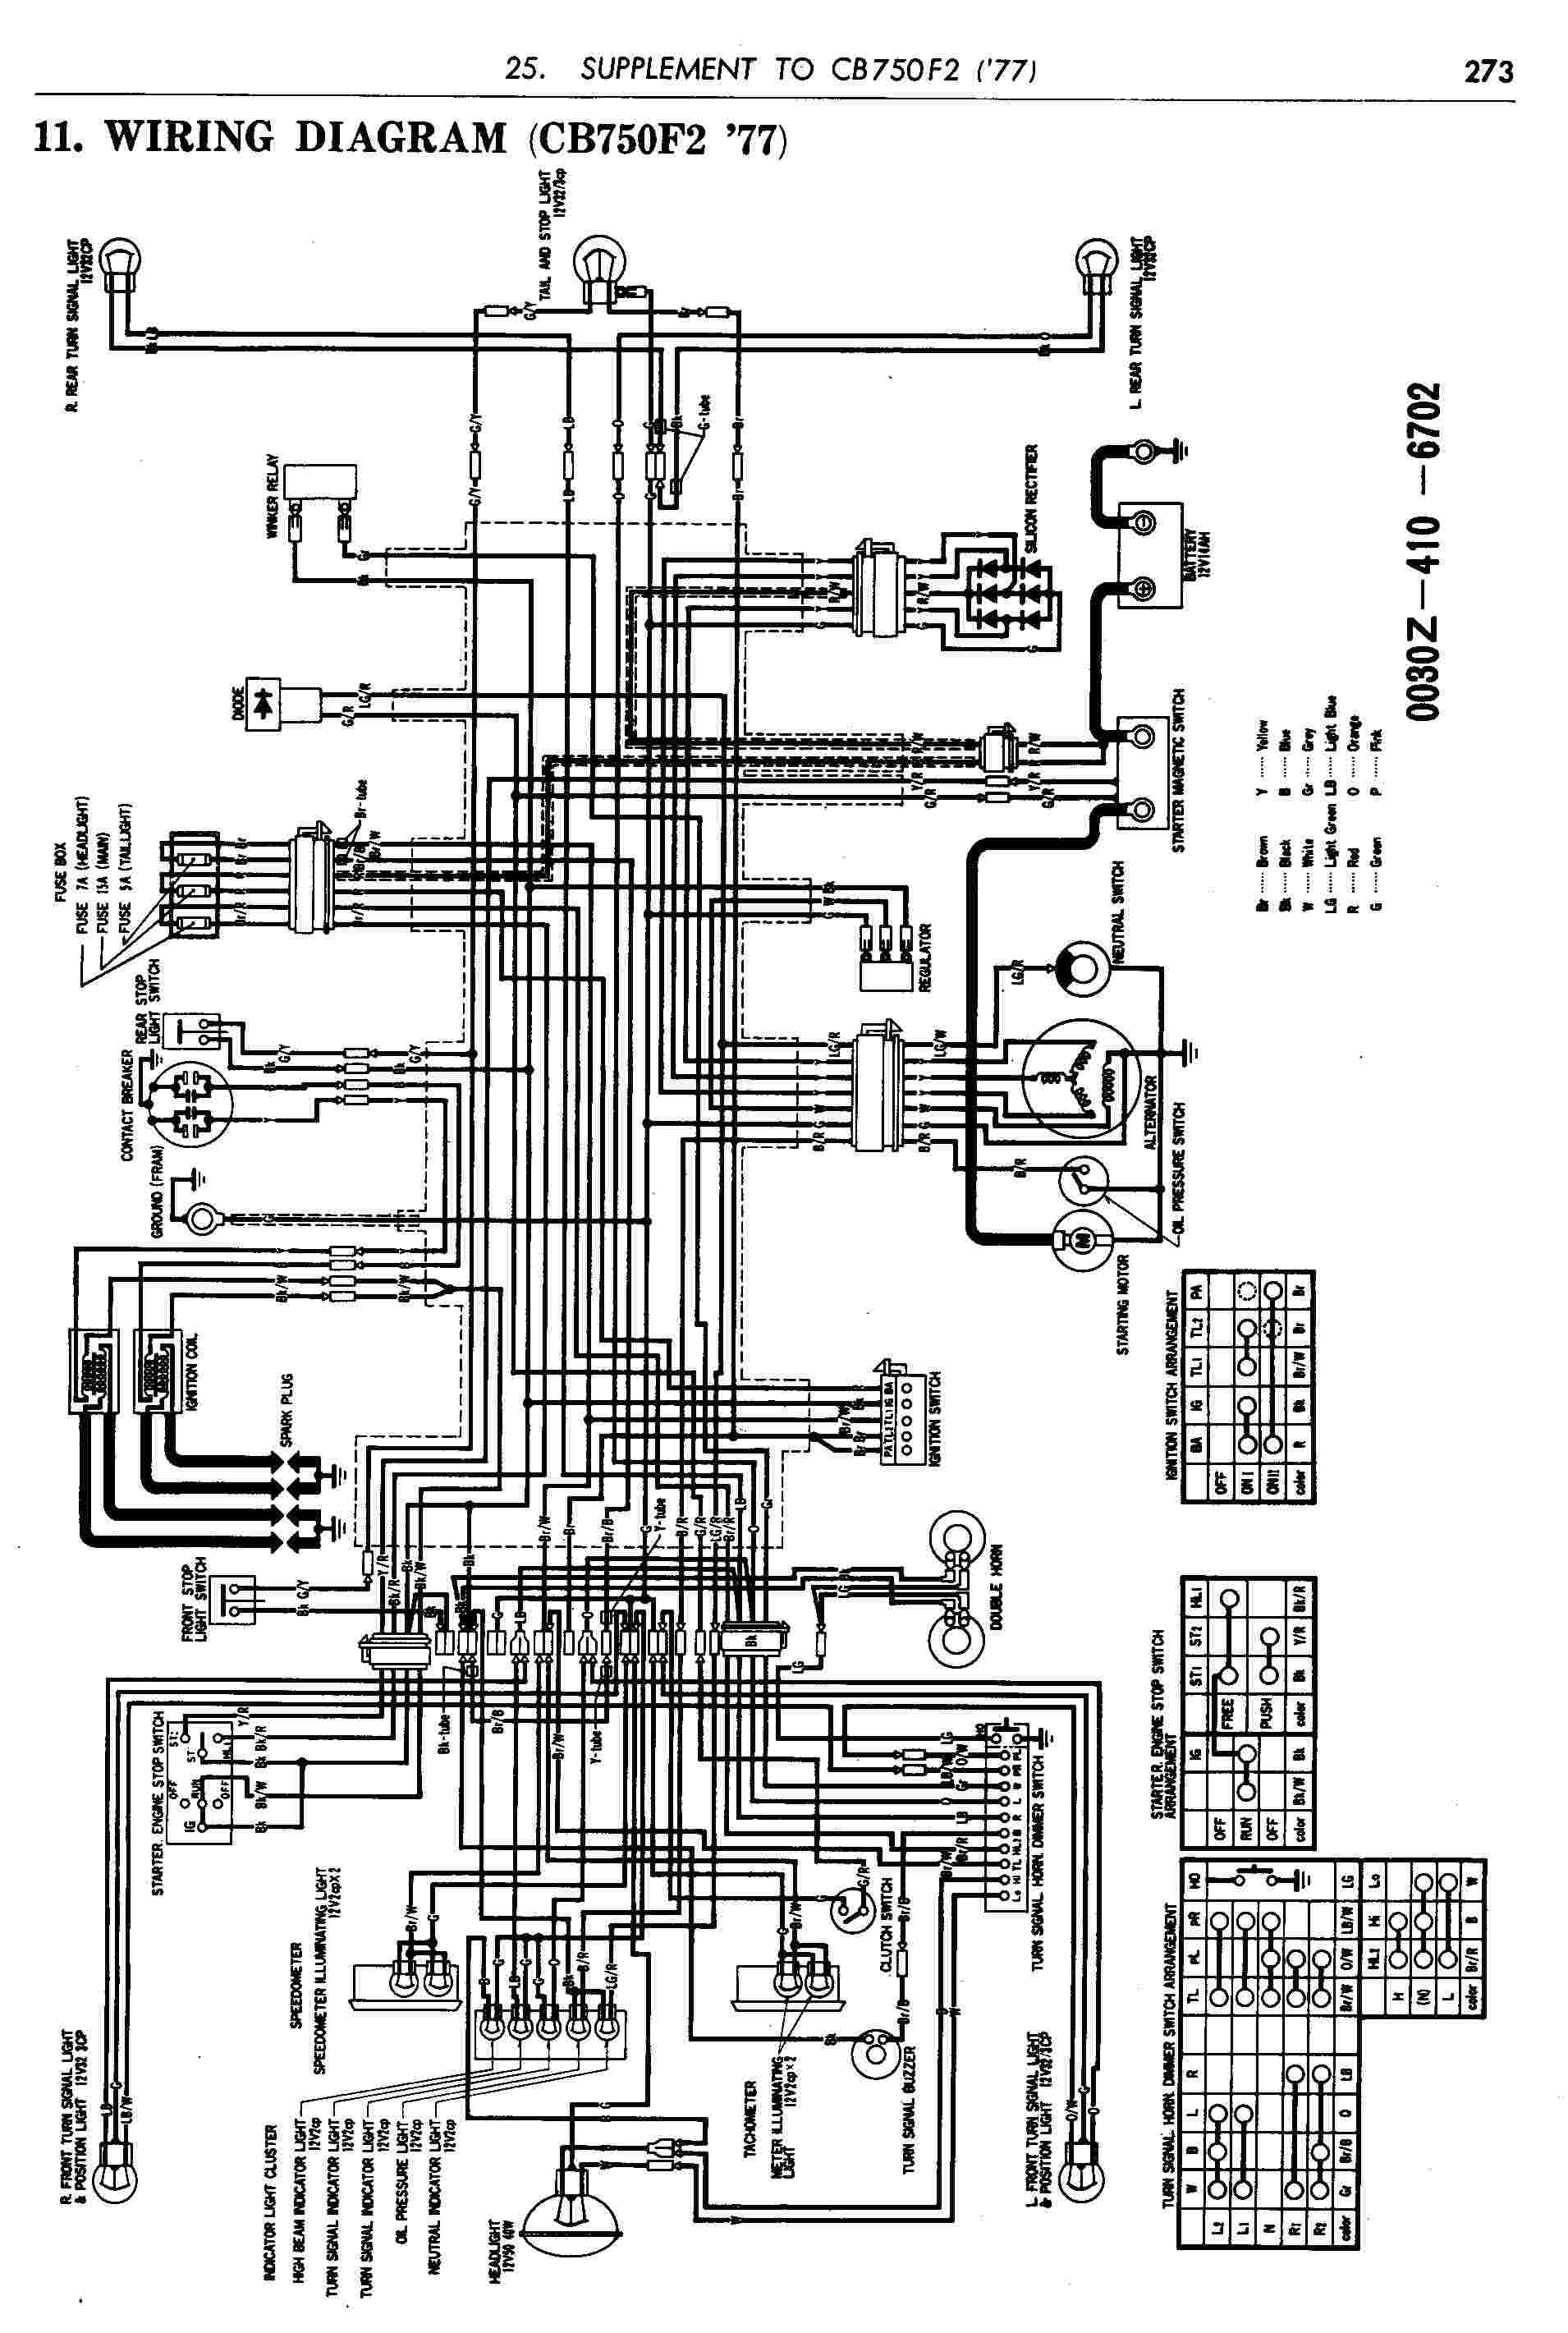 hight resolution of 1974 cb750 bobber wiring diagram wiring libraryhonda cb 750 wiring diagram 27 wiring diagram images wiring